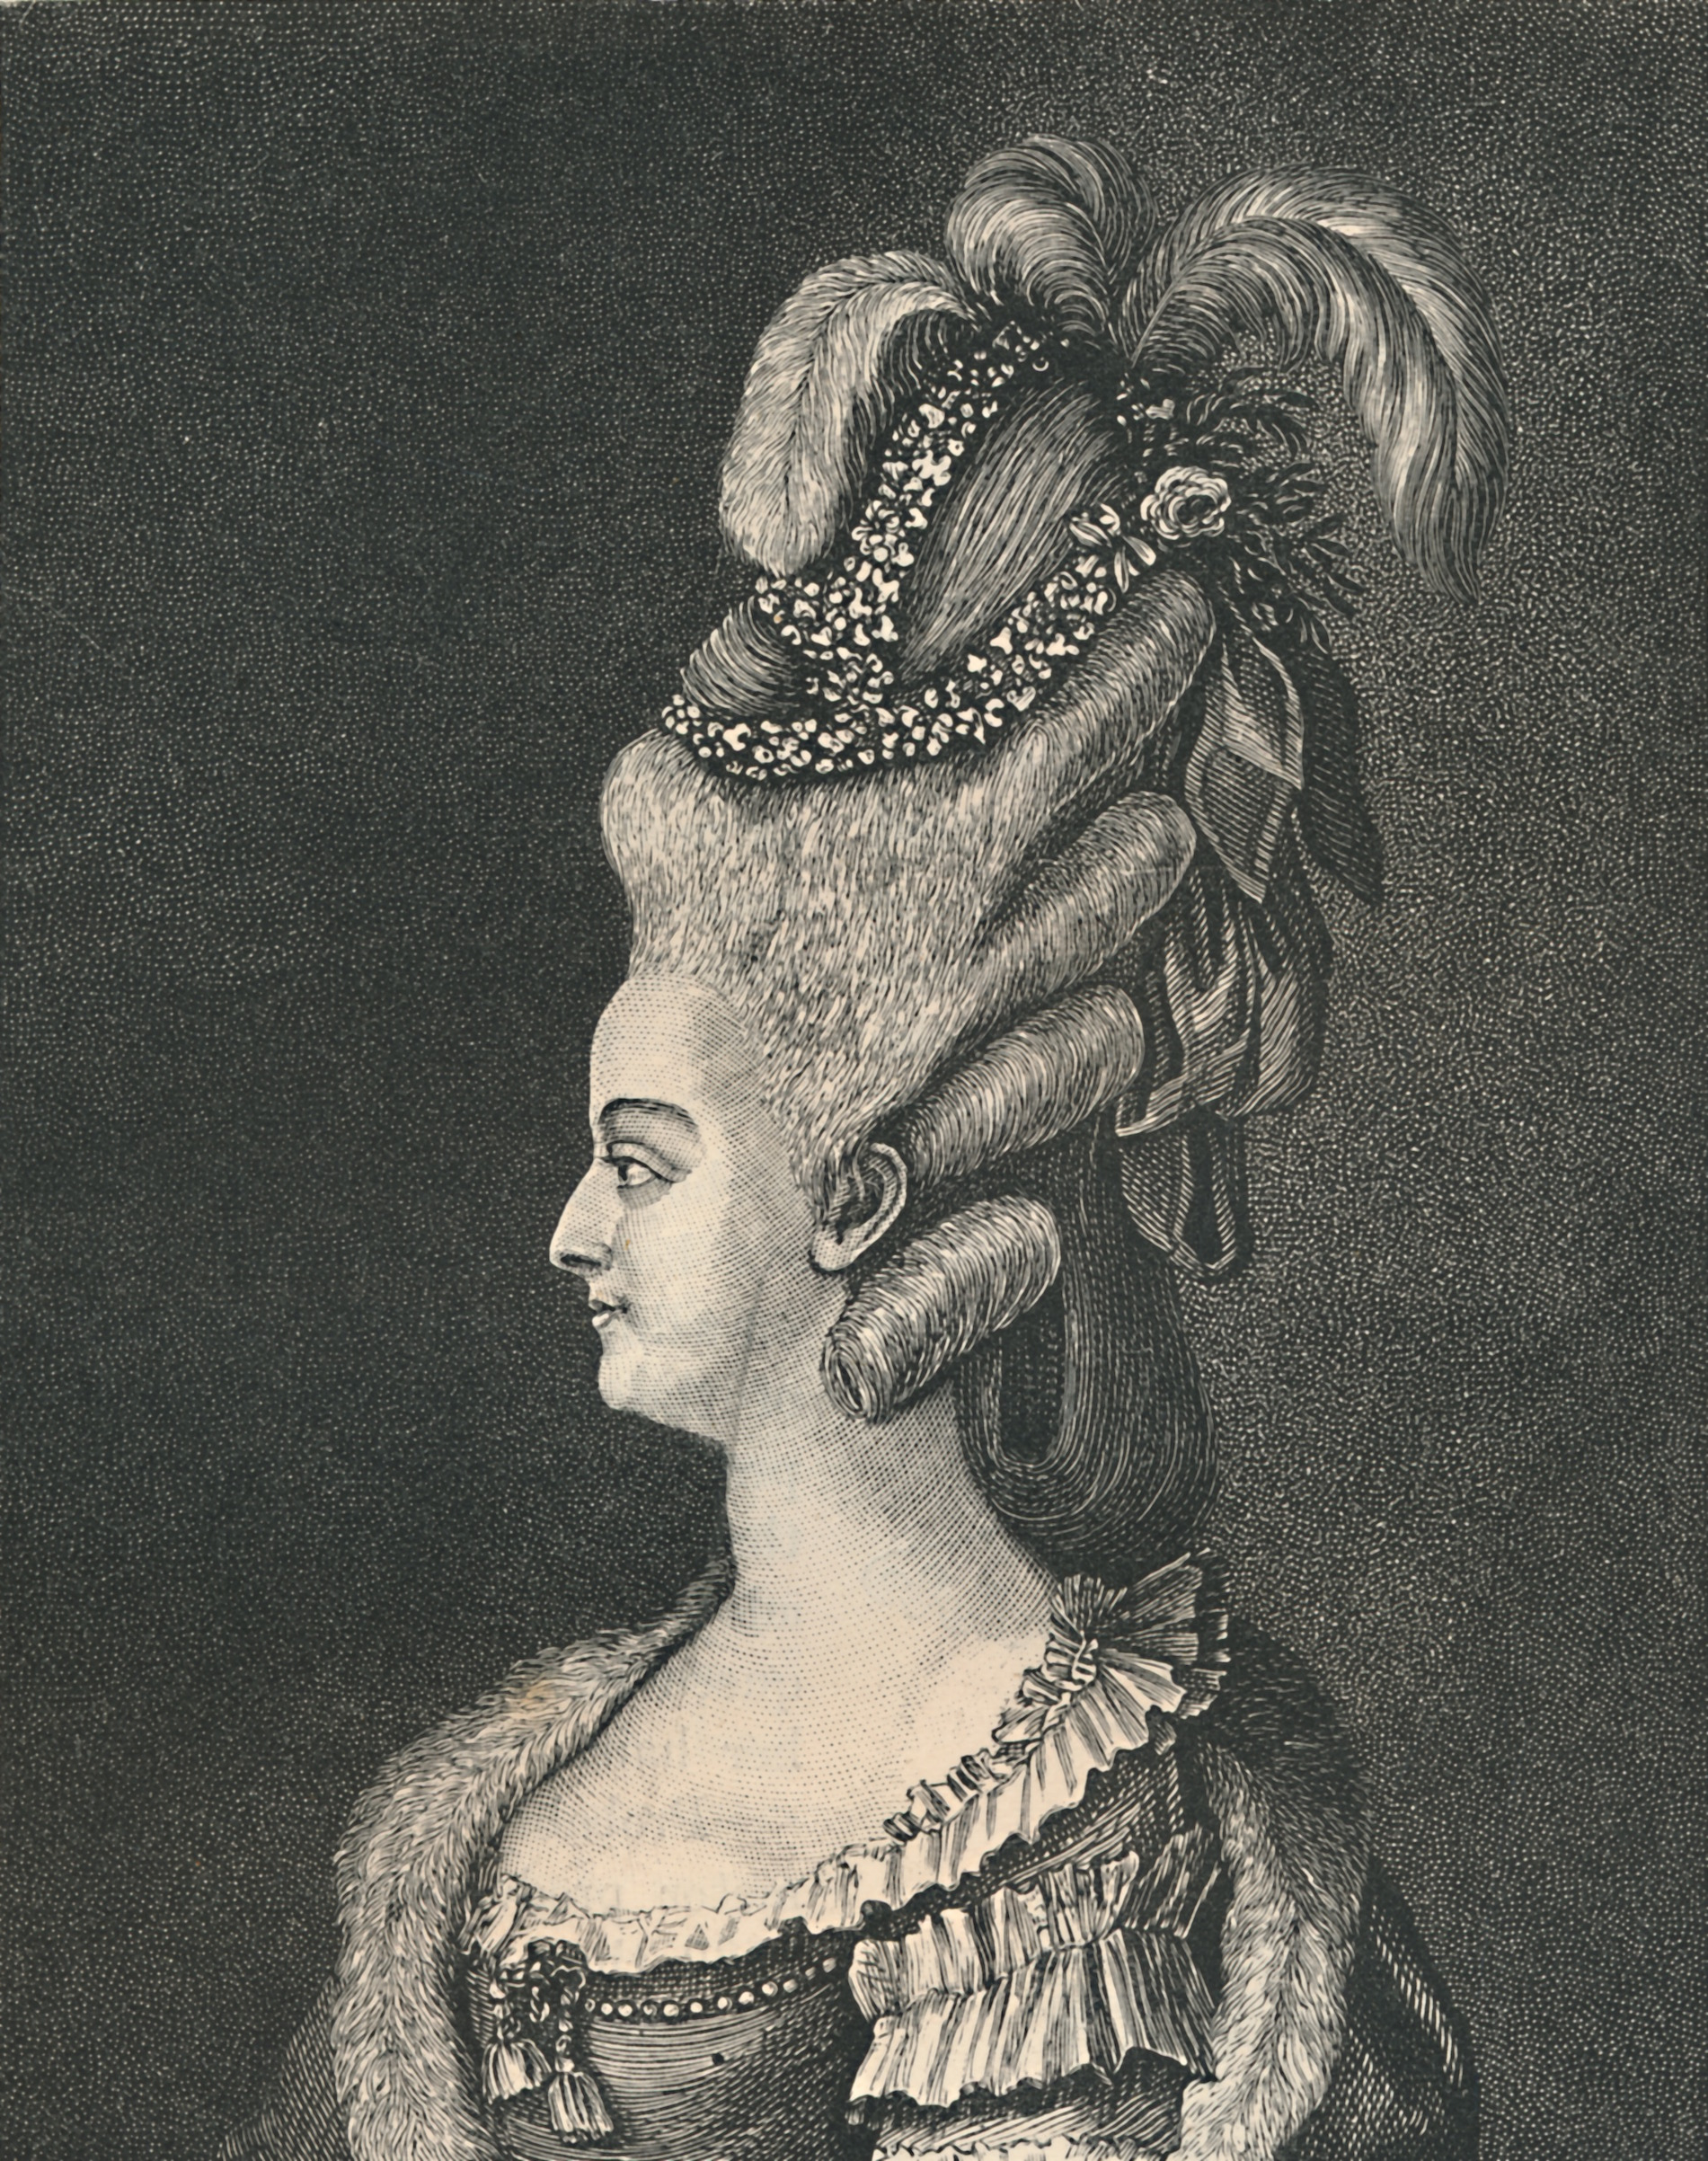 19th century illustration of Marie Antoinette (1755-1793) with elaborate hairstyle.